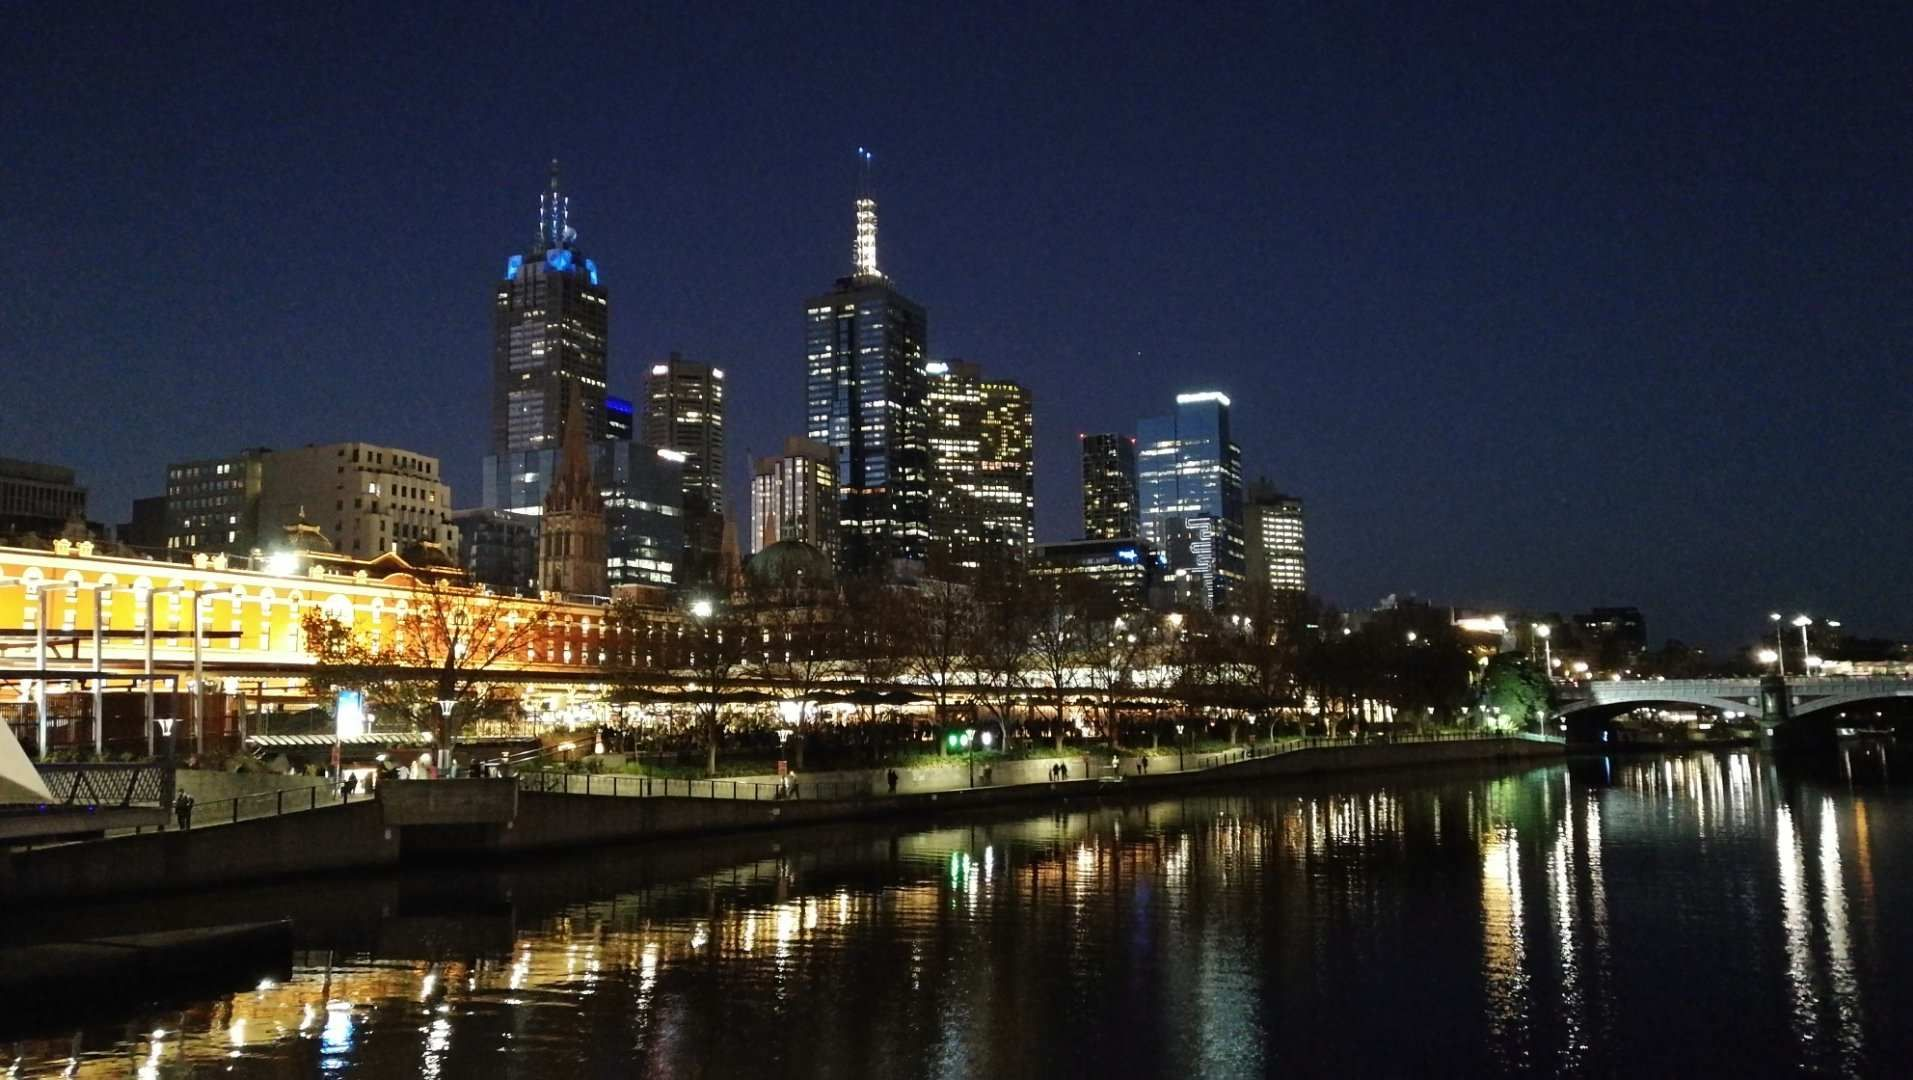 Tour Name 6D4N Best of Melbourne & Puffing Billy Tour